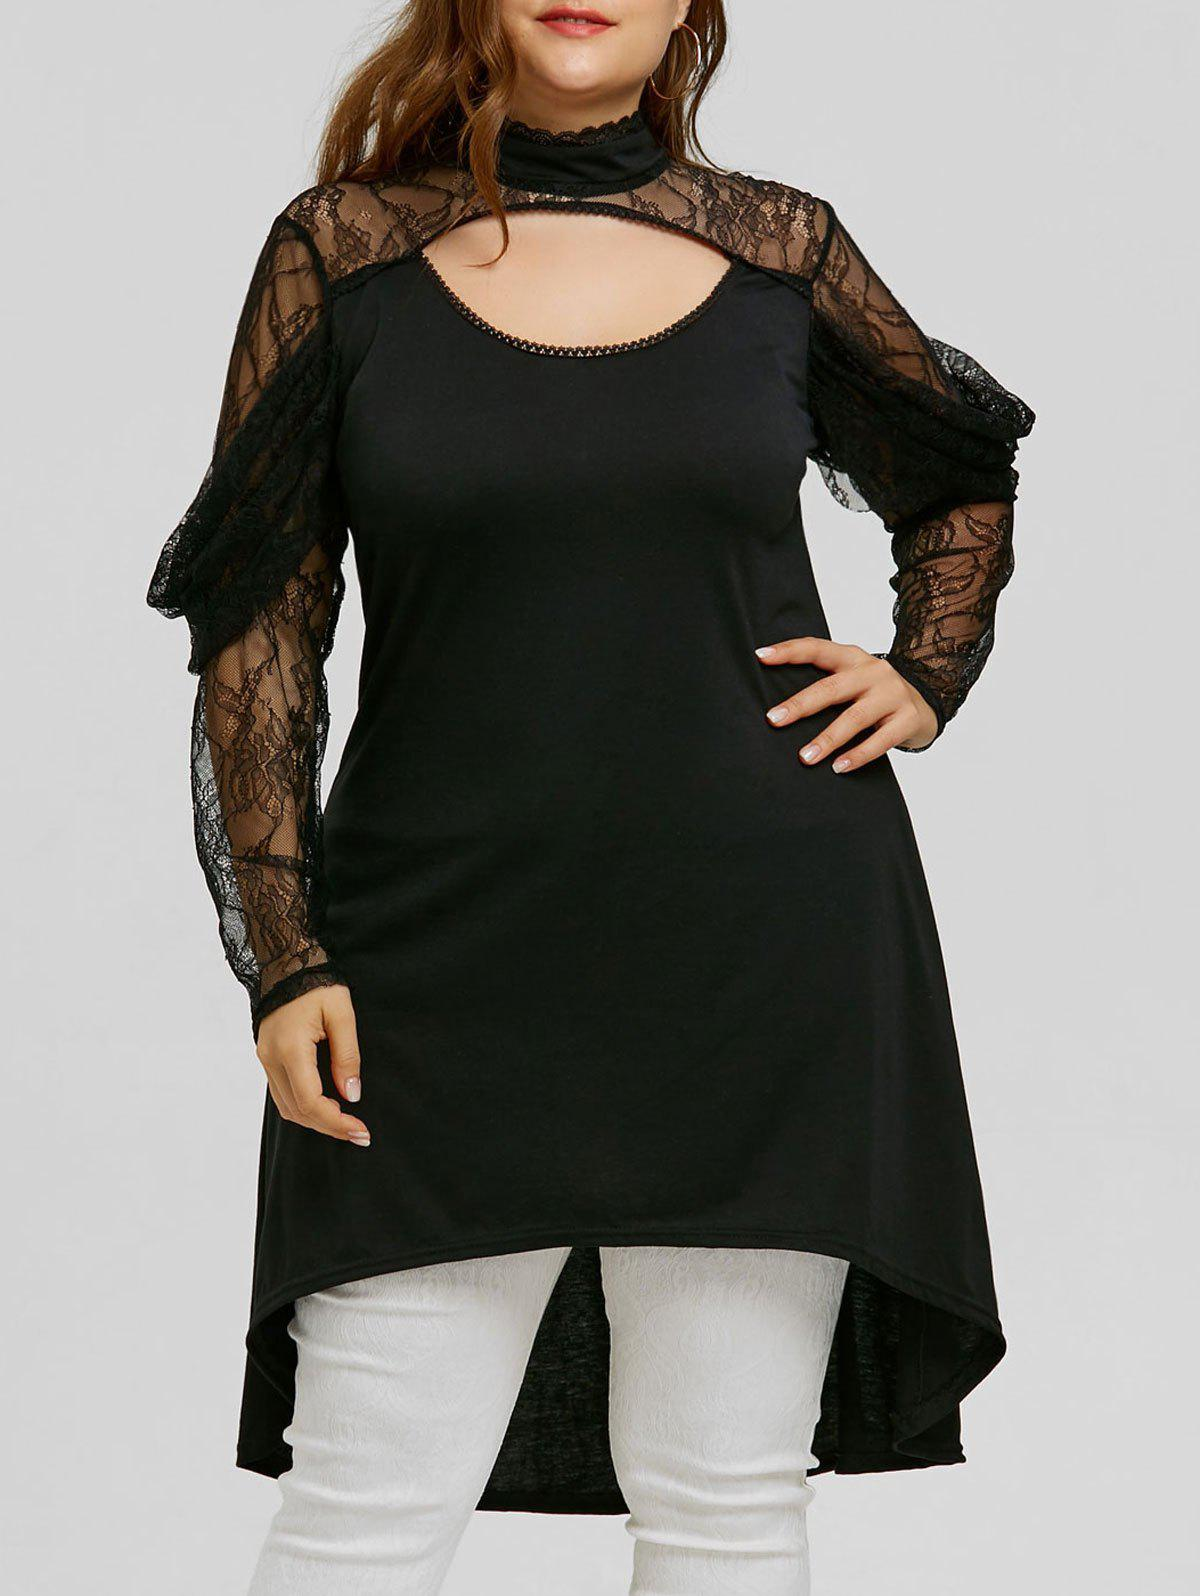 Lace Sleeve Plus Size High Low Blouse free shipping 10pcs 100% new pico